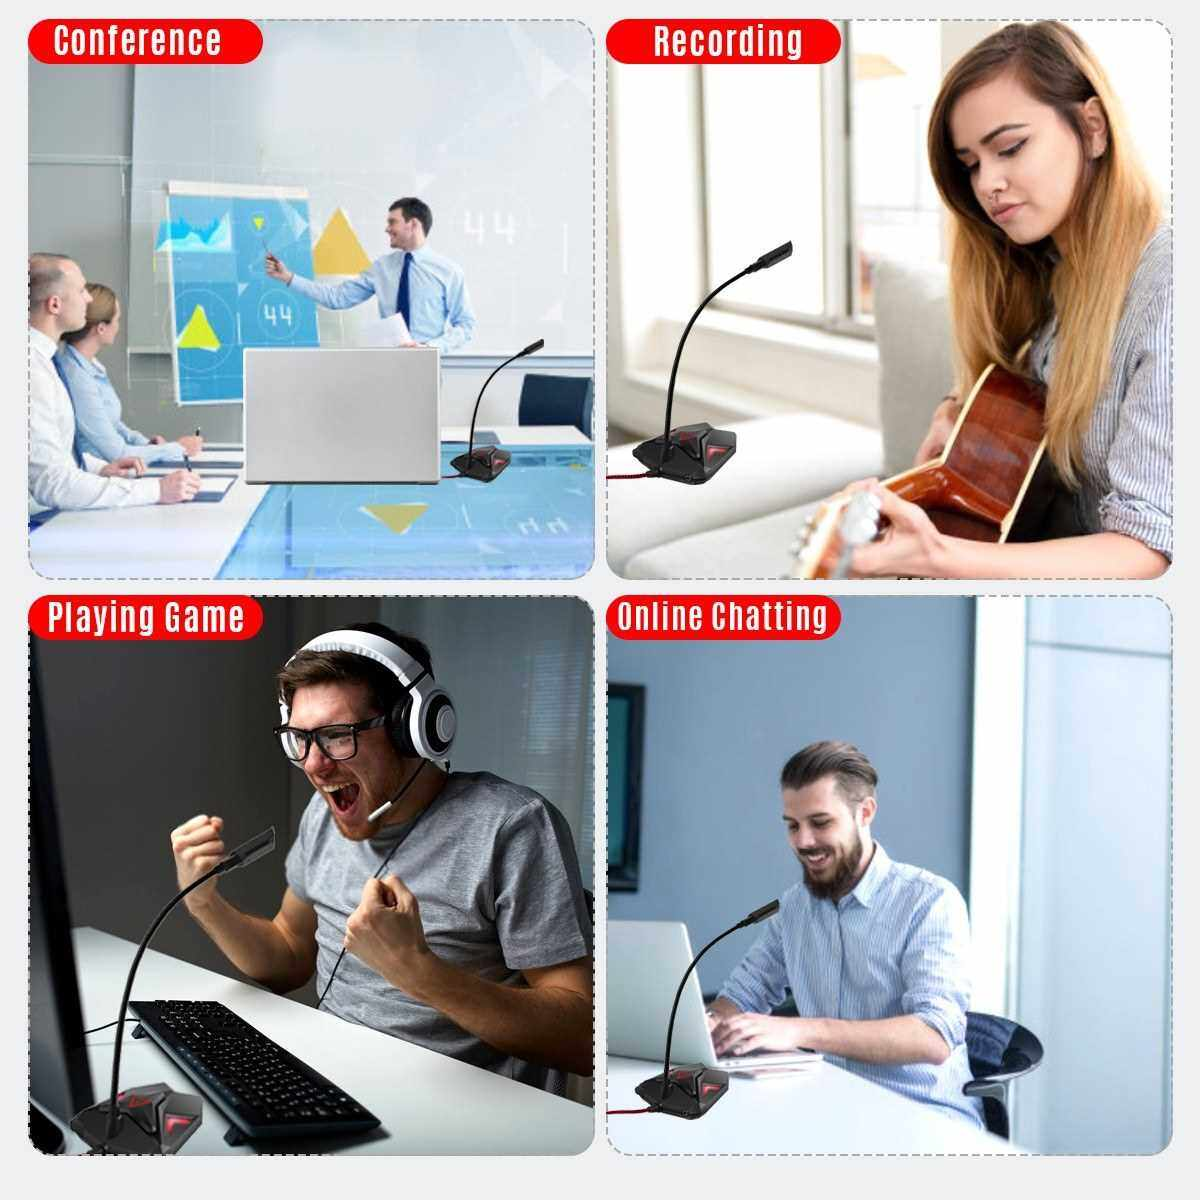 Best Selling USB Computer Microphone Cool Gaming Microphone Omnidirectional Desktop Mic 360 Adjustable Neck with Mute Switch LED Indicator Headphone Audio Port USB Plug & Play for Computer PC Laptop Office Conference Games (Standard)